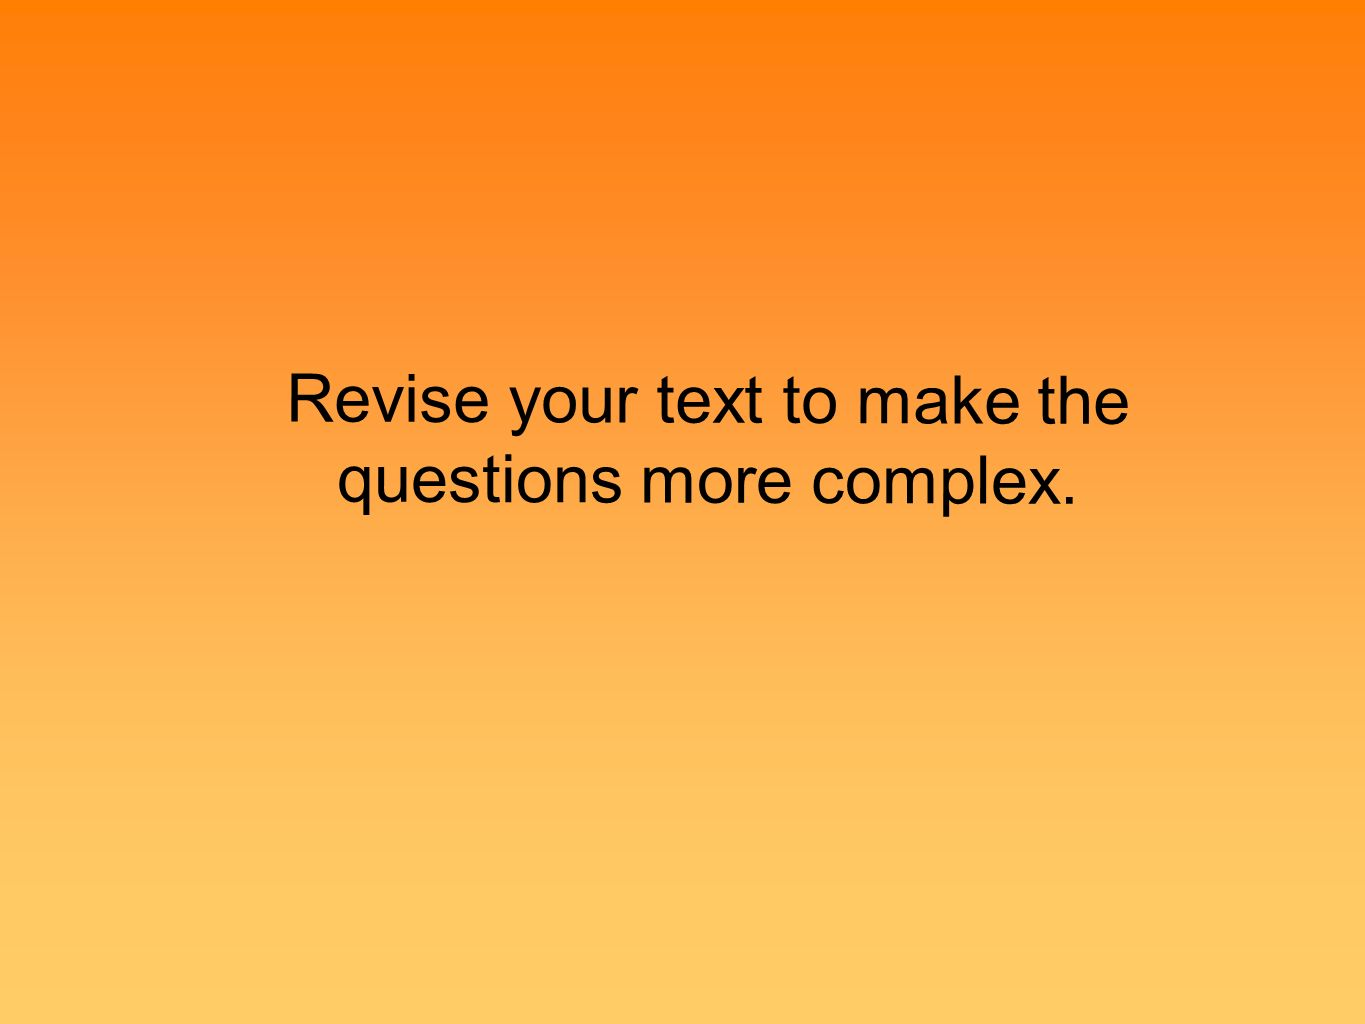 Revise your text to make the questions more complex. Low DOK